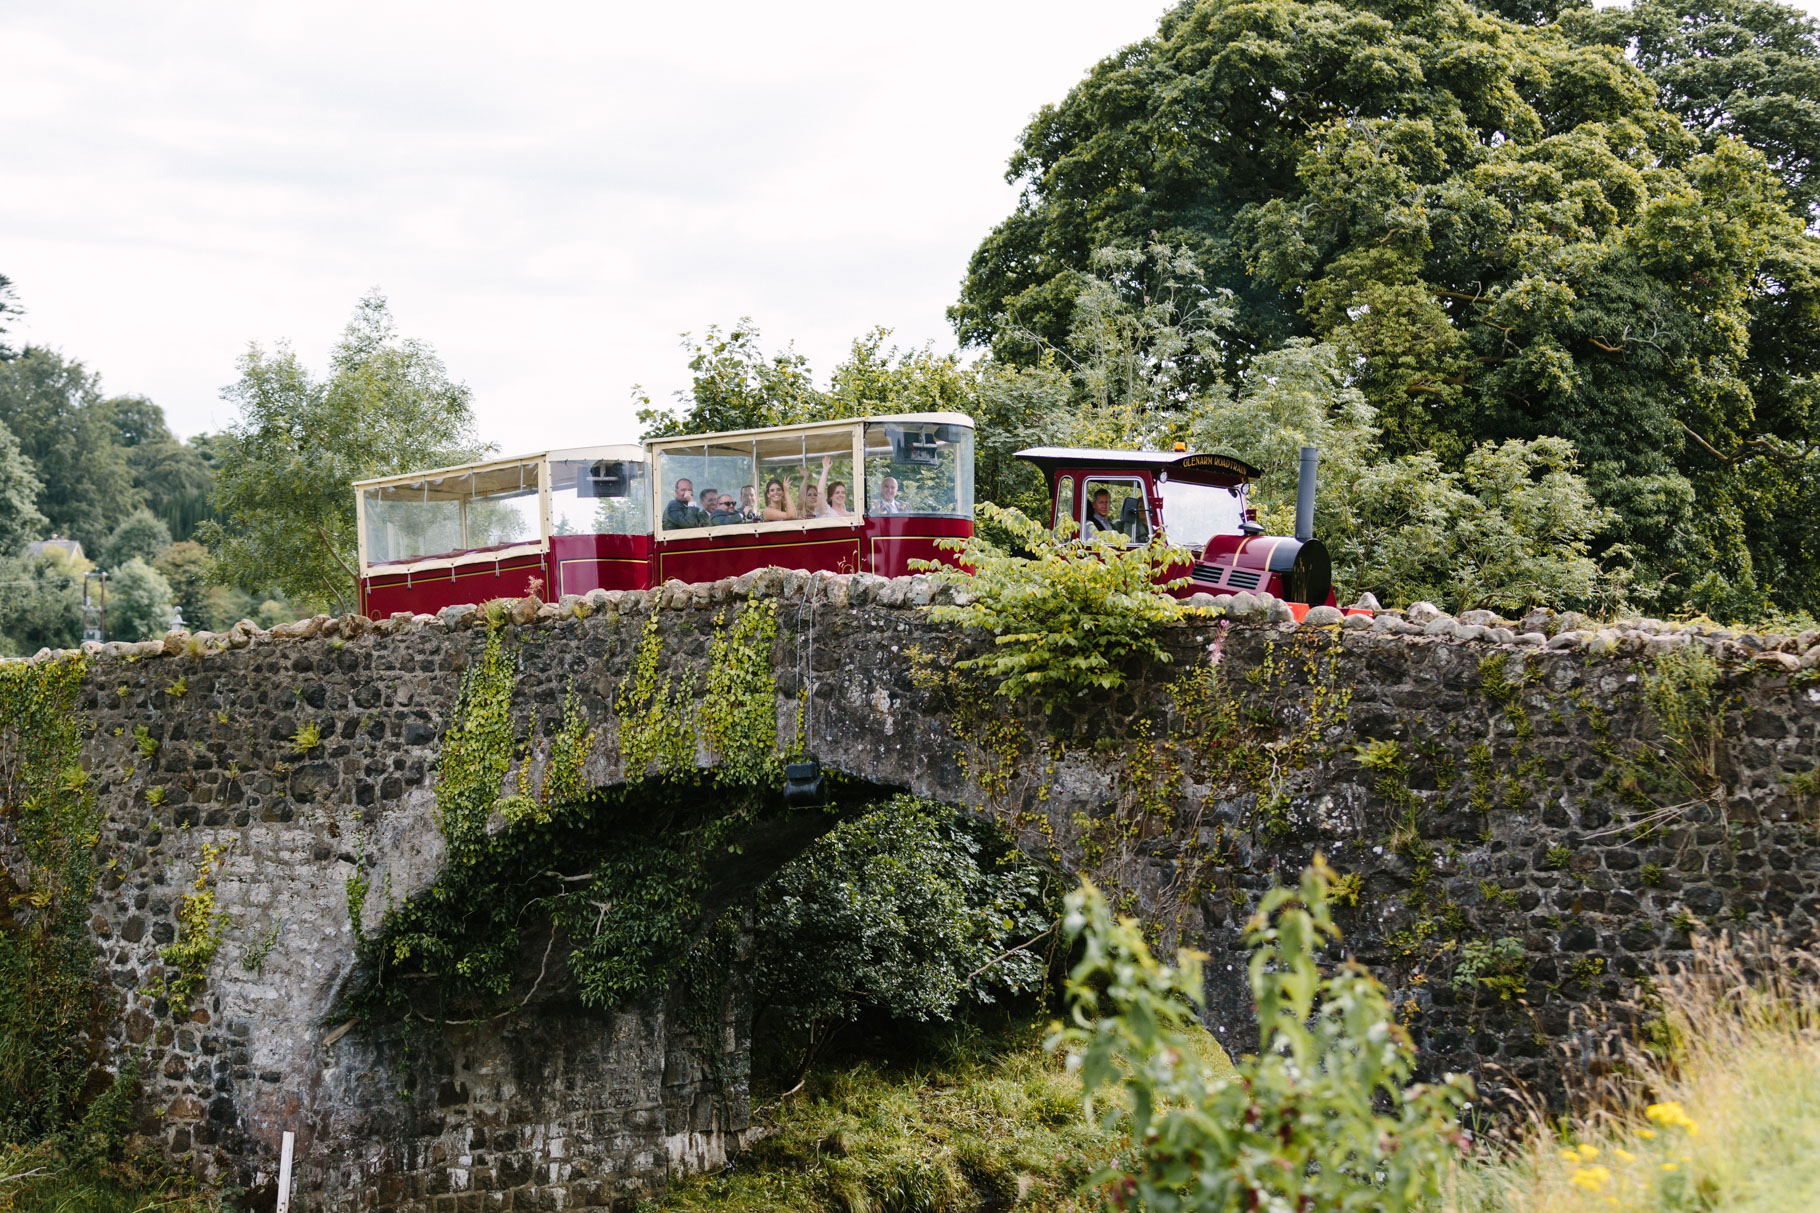 Glenarm Riverlodge train